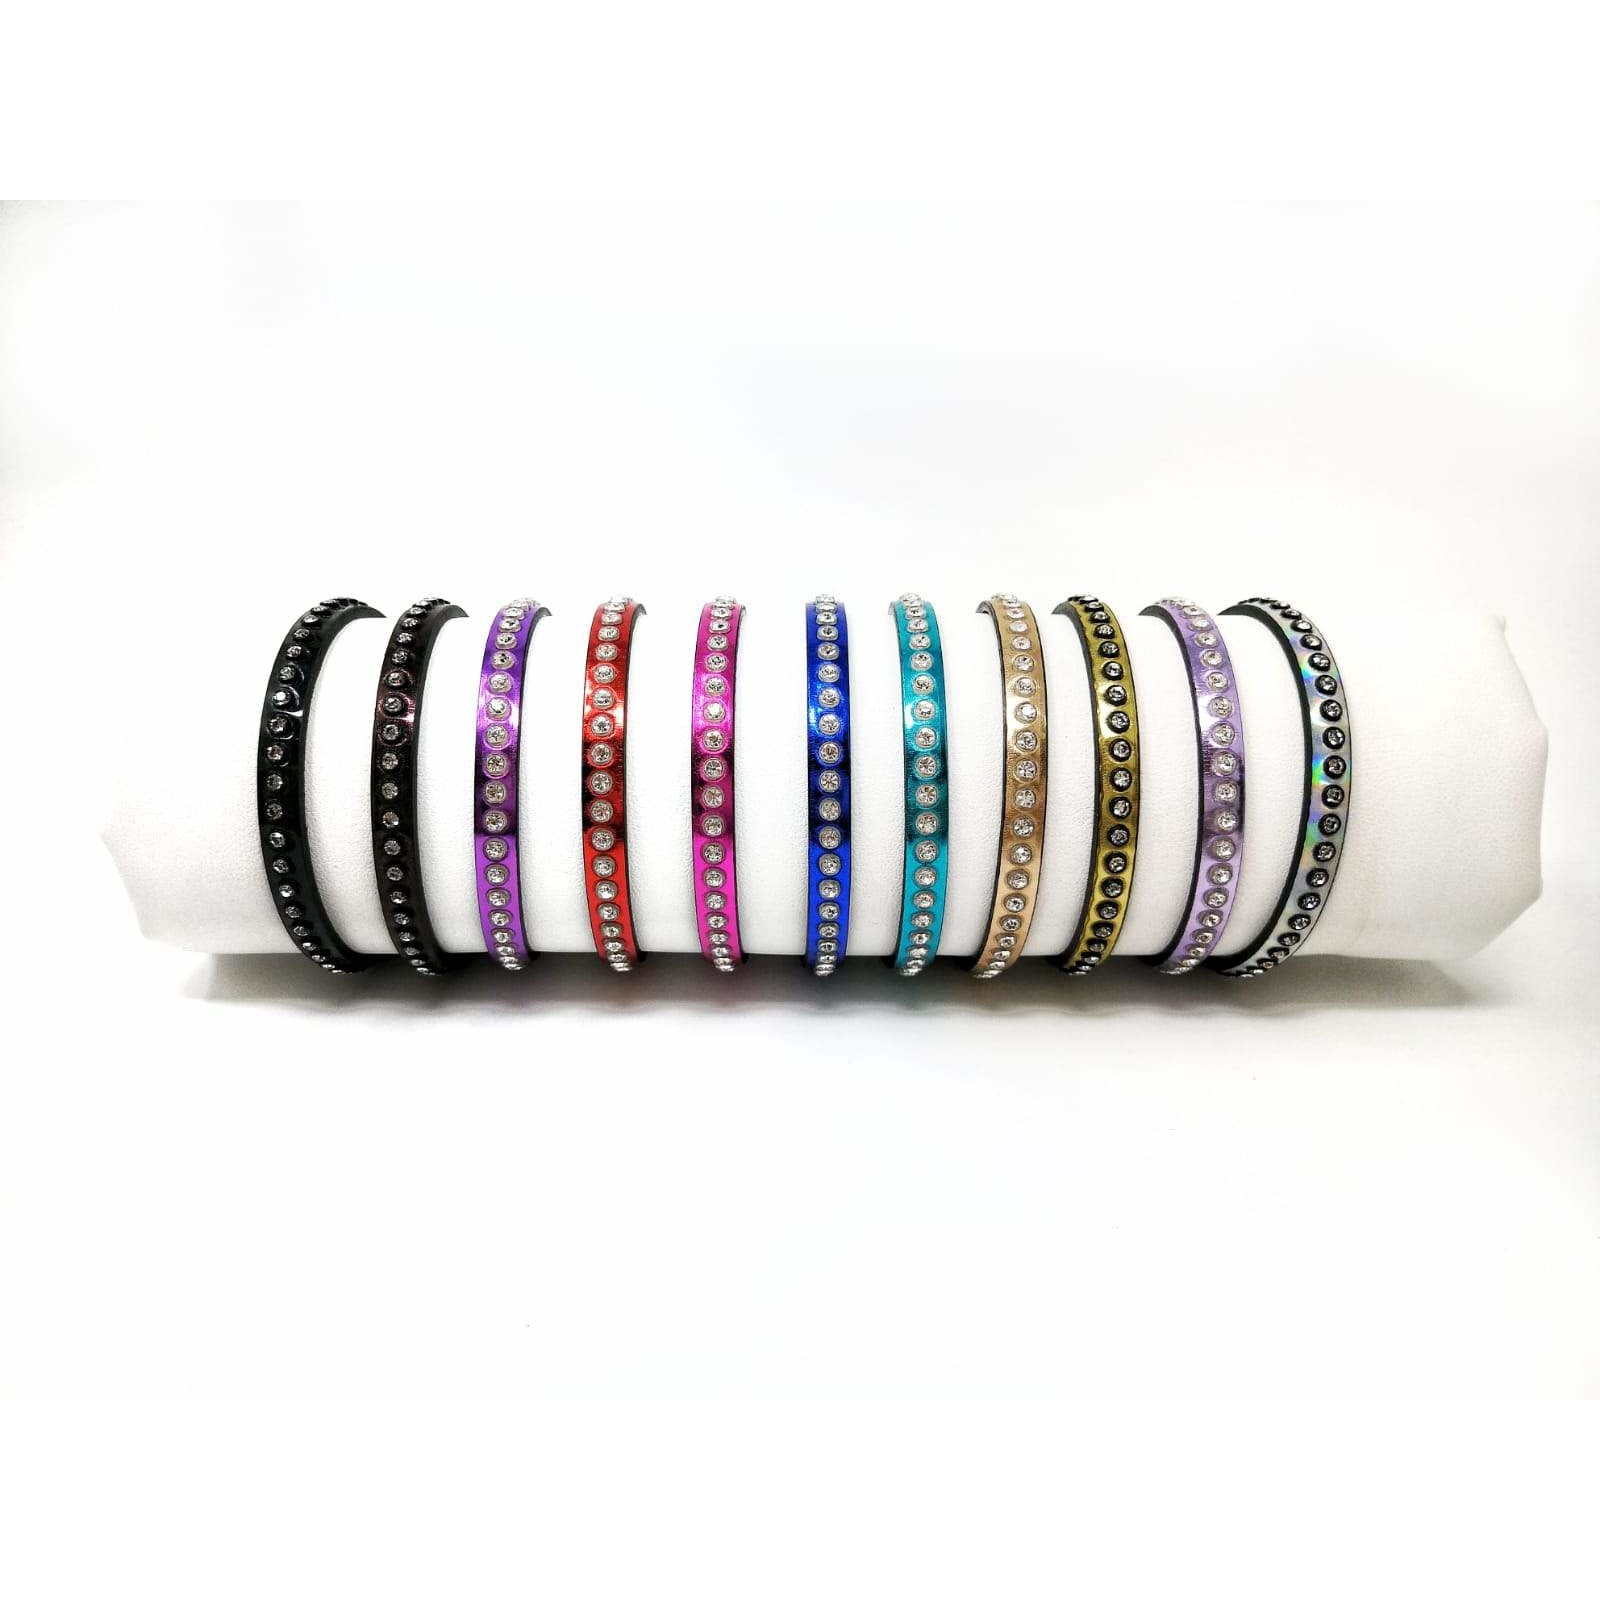 Jennifer Tattanelli crafted in Florence these 1 round Nappa leather bracelets that come in many colors